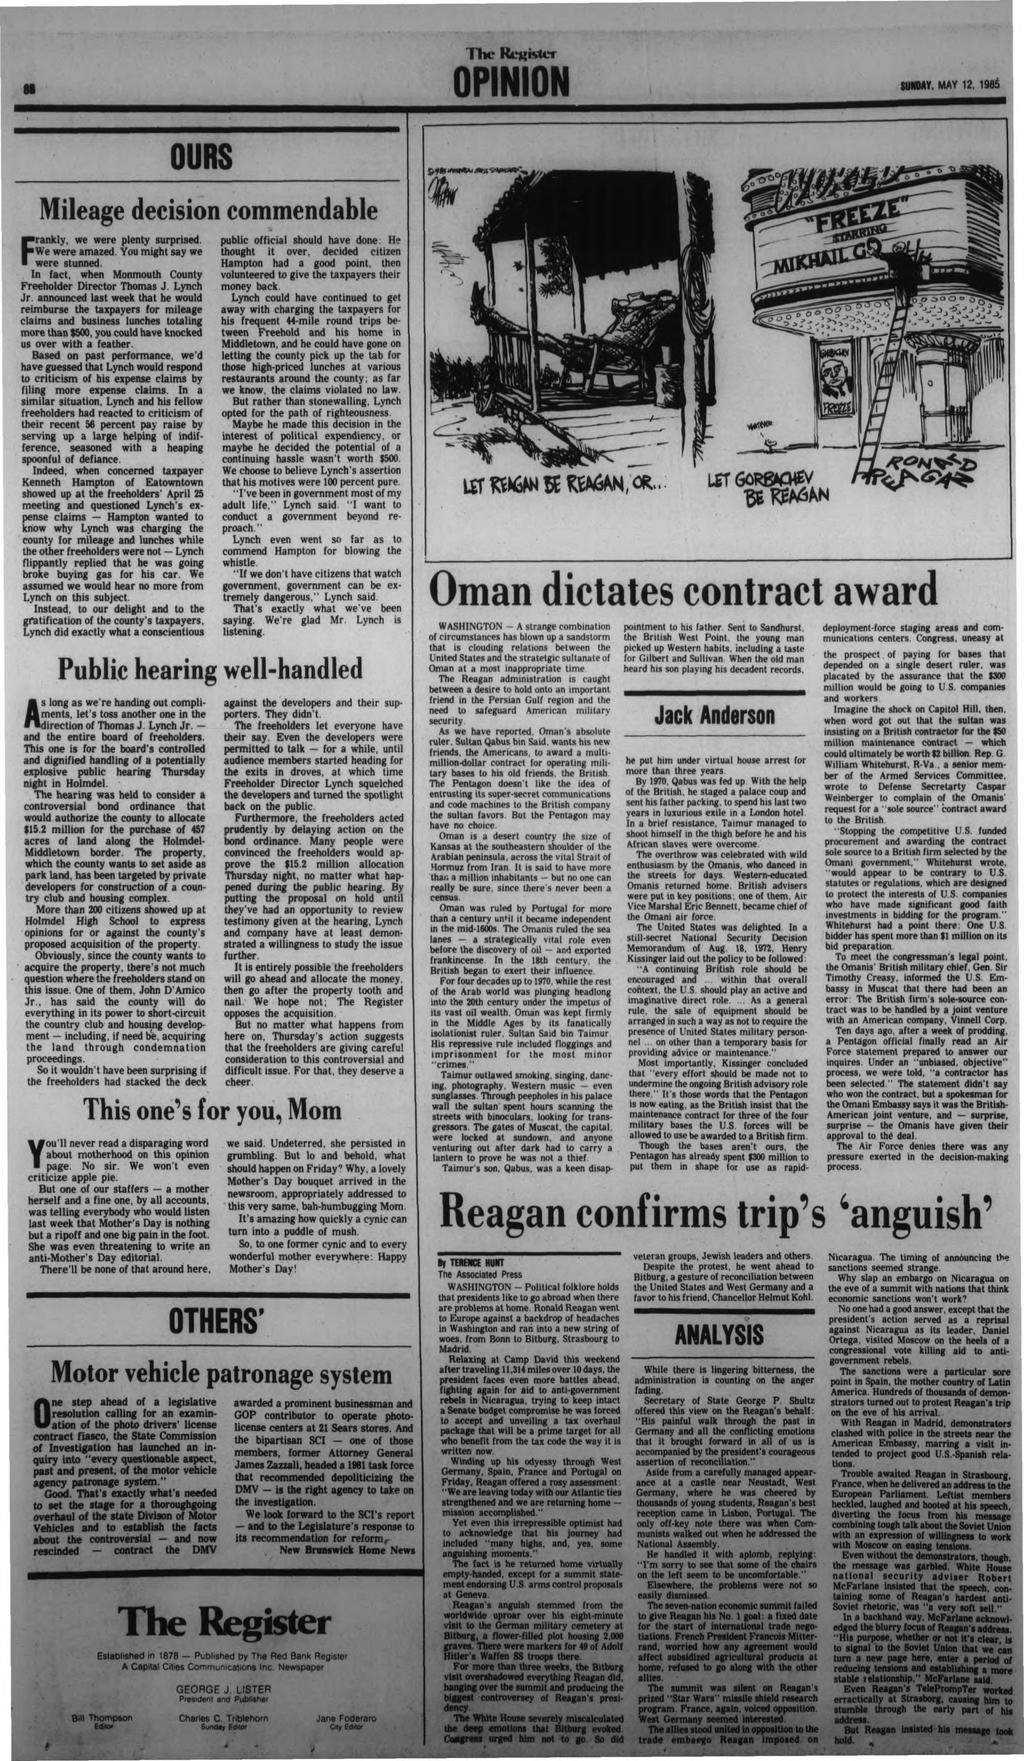 OPINION SUNDAY. MAY 12. 1985 F OURS Mileage decision commendable rankly, we were plenty surprised. We were amazed. You might say we were stunned.